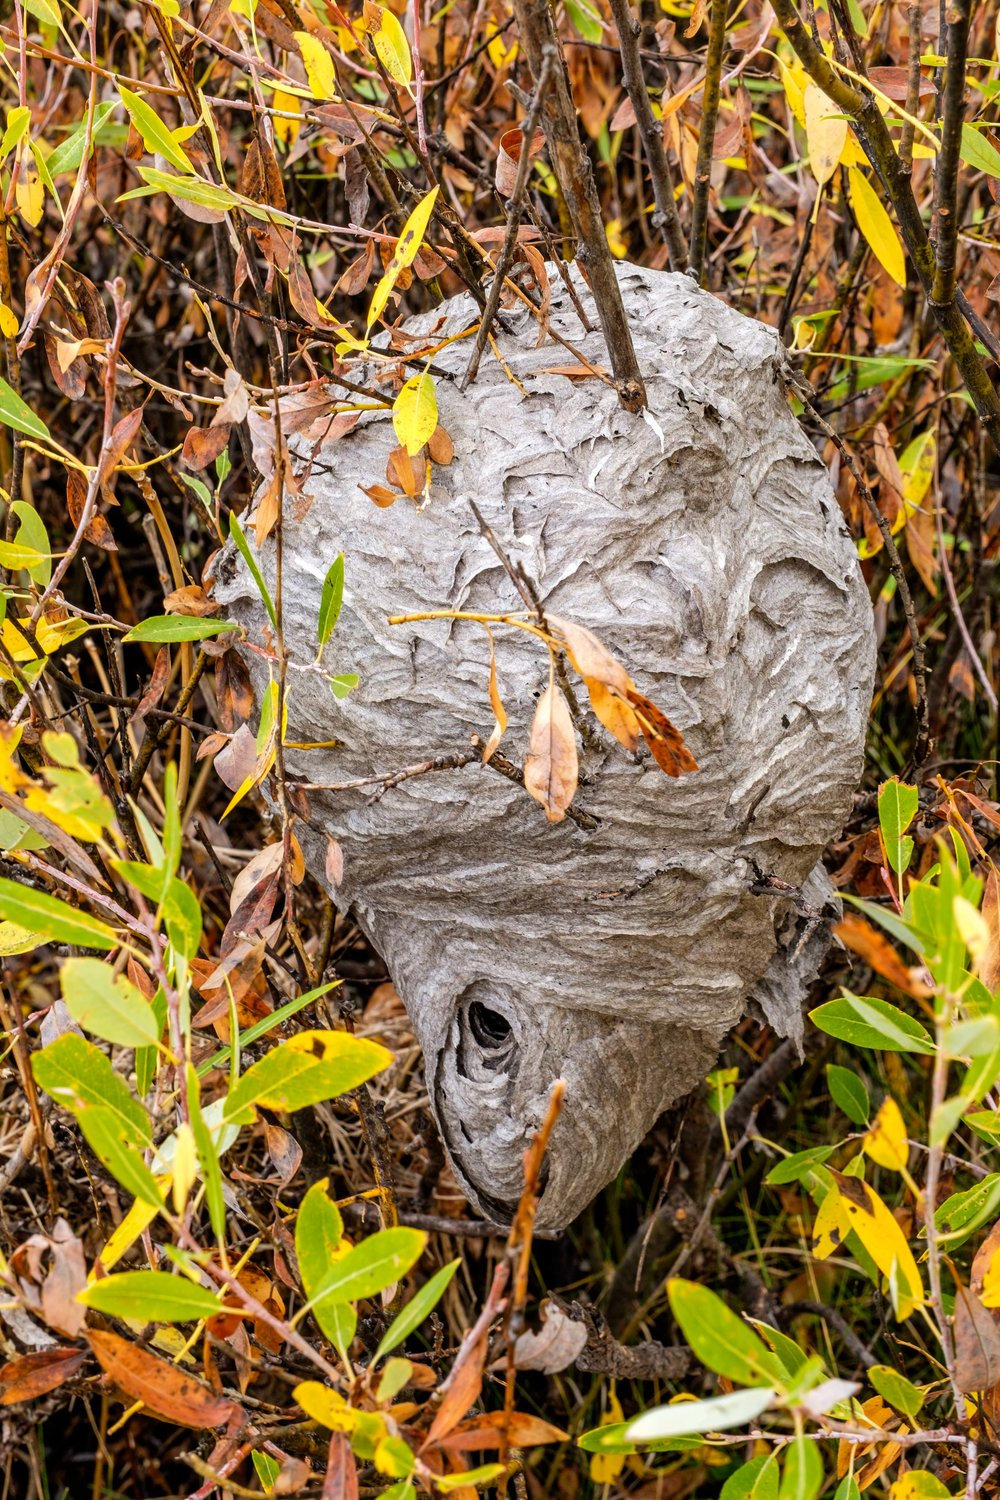 Wandering off trail, we found a hornets nest in the trees. Needless to say, we kept our distance.